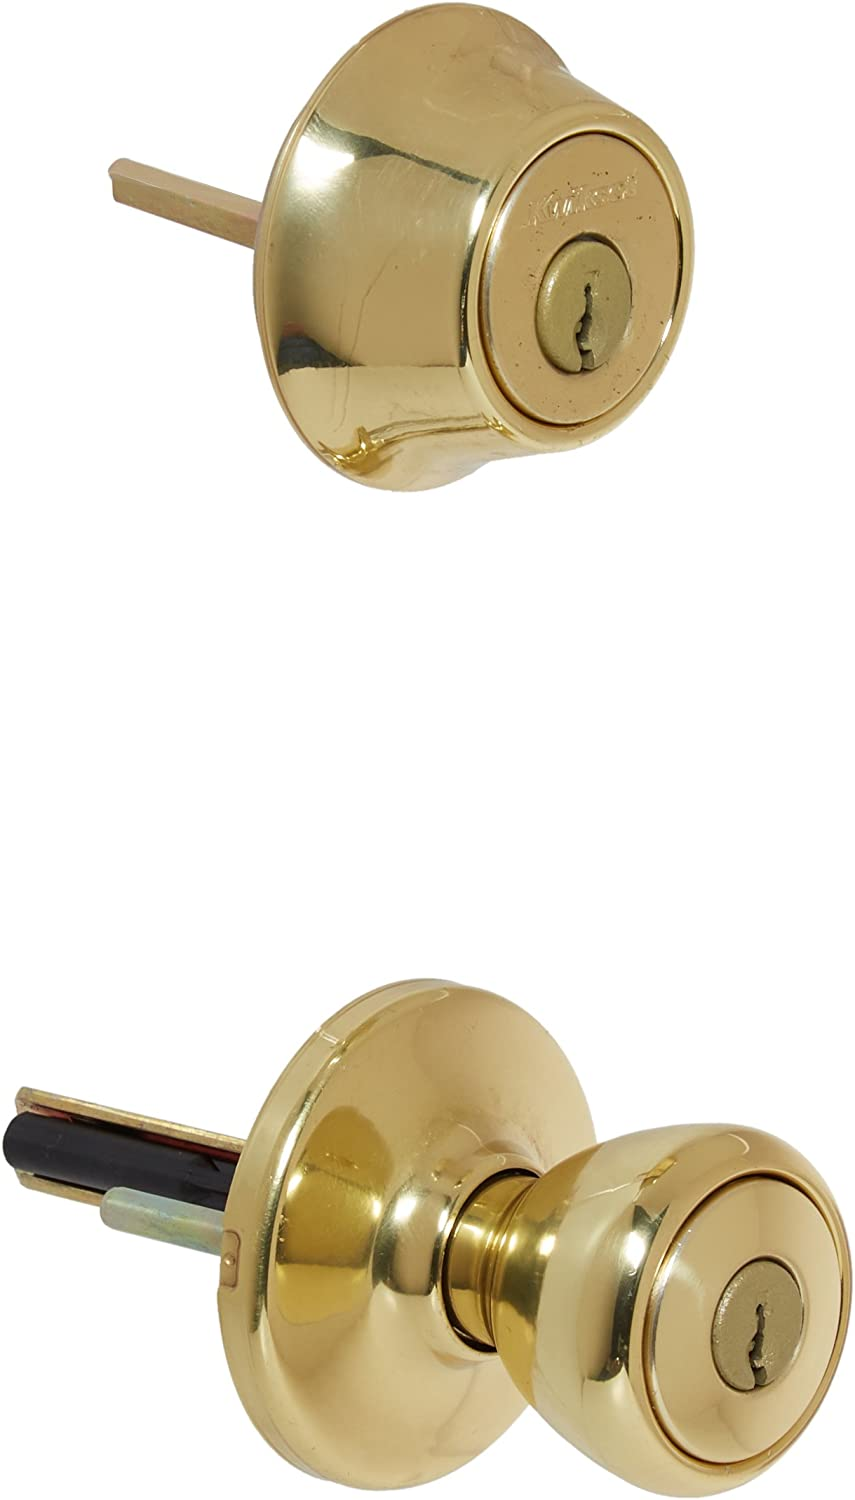 Kwikset 242 Tylo Entry Knob and Single Cylinder Deadbolt Project Pack in Polished Brass